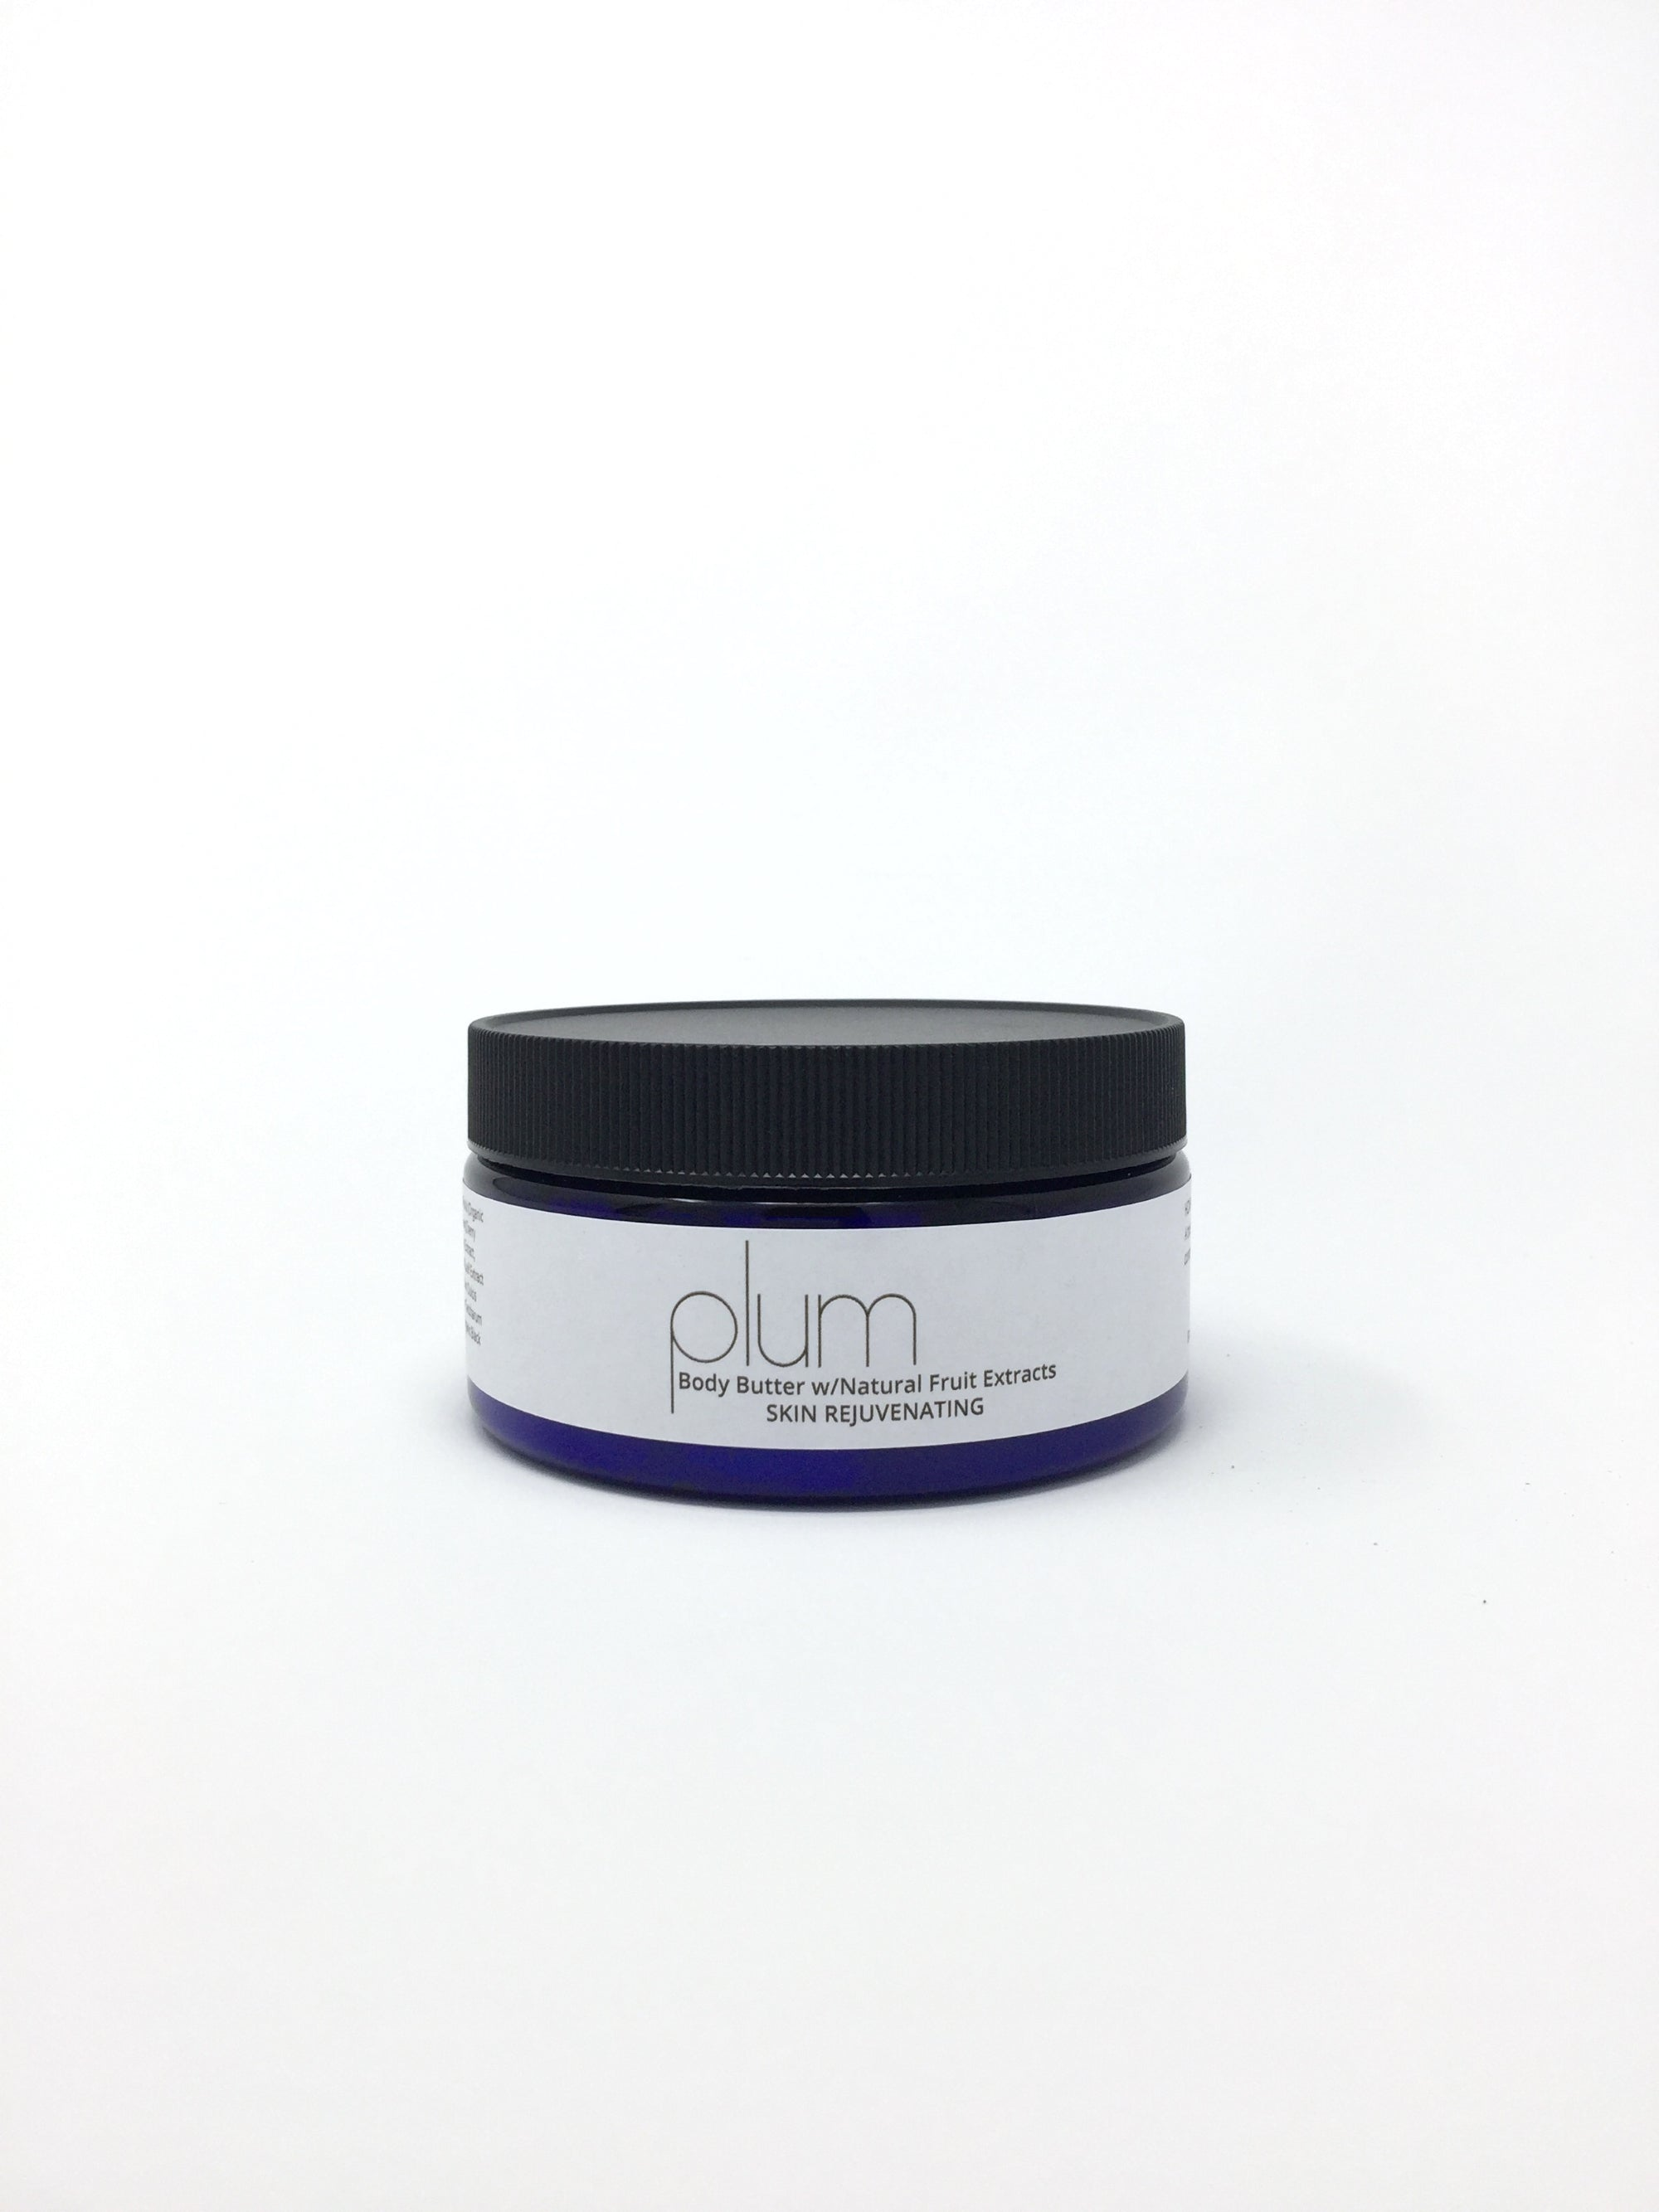 PLUM Body Butter w/Natural Fruit Extracts SKIN REJUVENATING